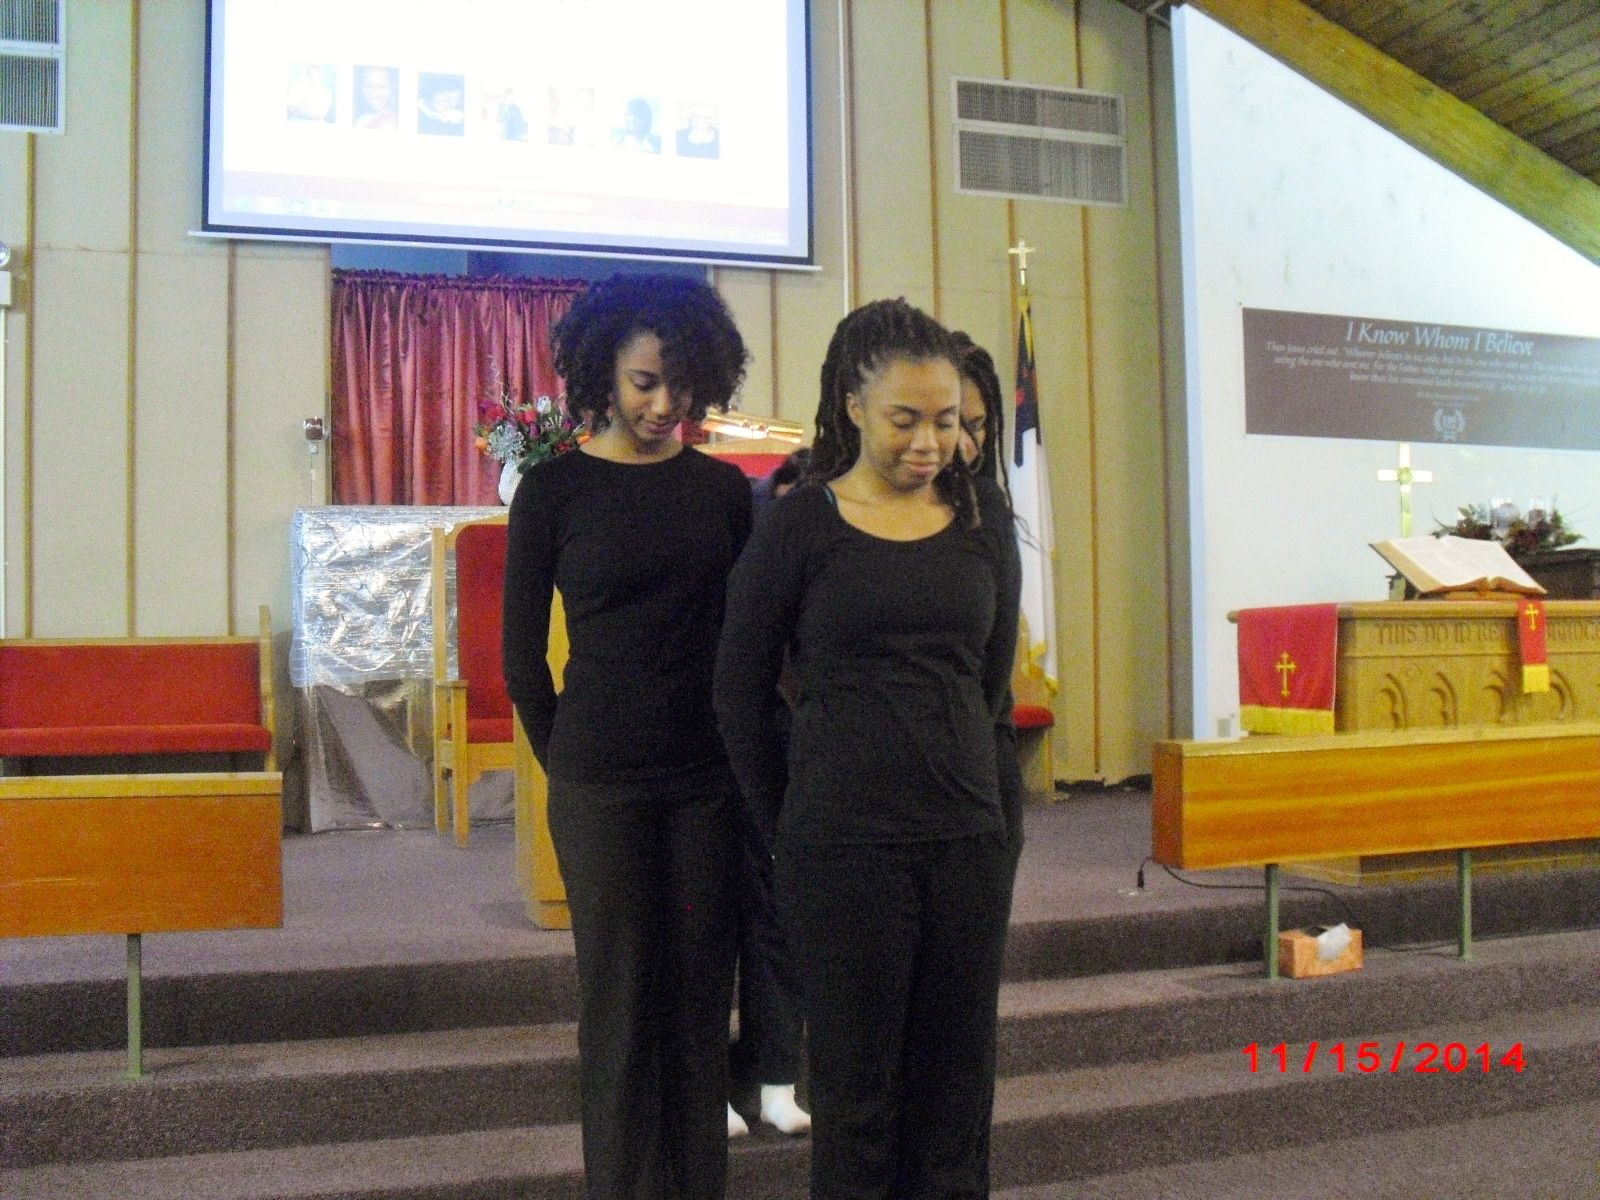 Jewels of Christ Youth Dance Ministry going forth in dance ministry.